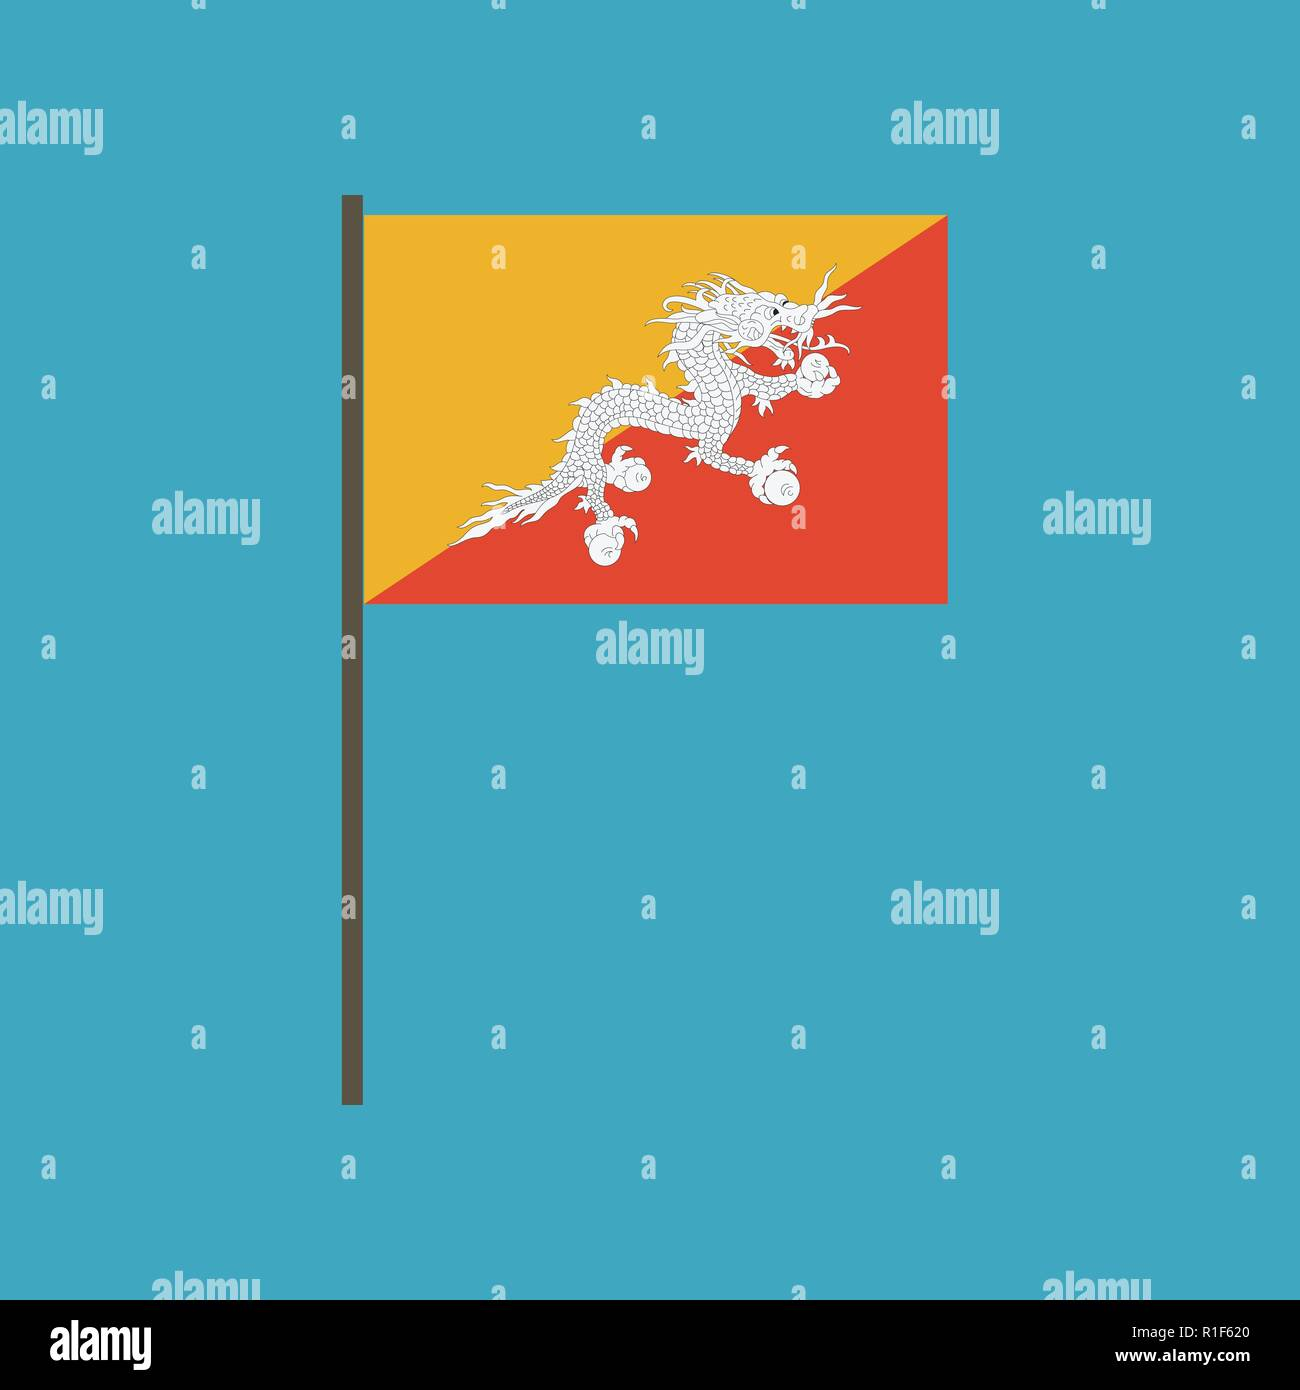 Bhutan flag icon in flat design. Independence day or National day holiday concept. - Stock Vector